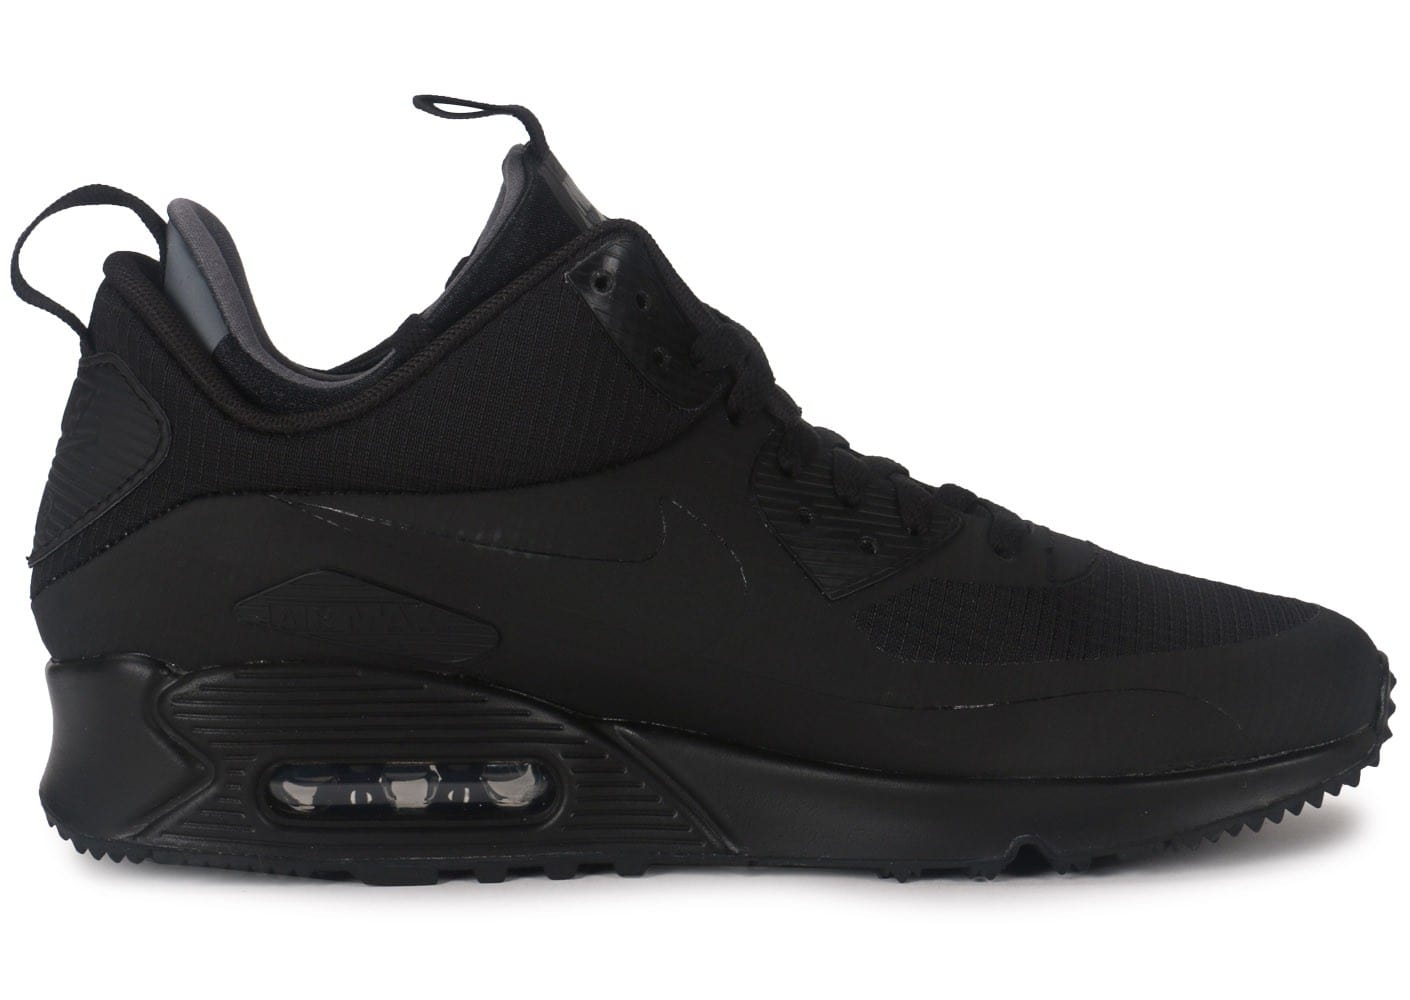 Nike Air Max 90 Mid Winter noir Chaussures Baskets homme